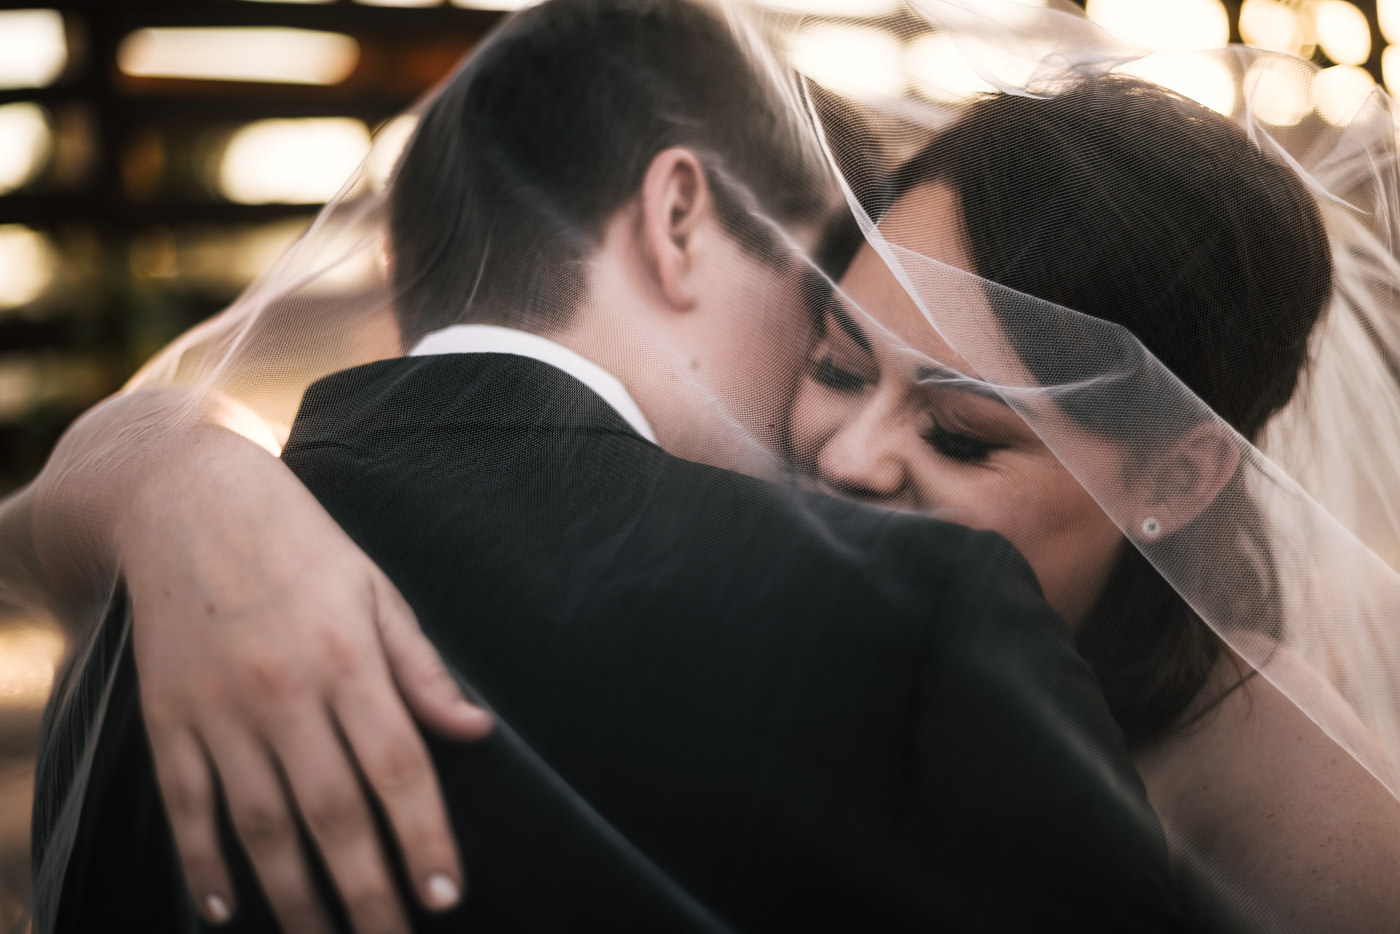 Newlyweds hold each other close under the wedding veil for a romantic moment.